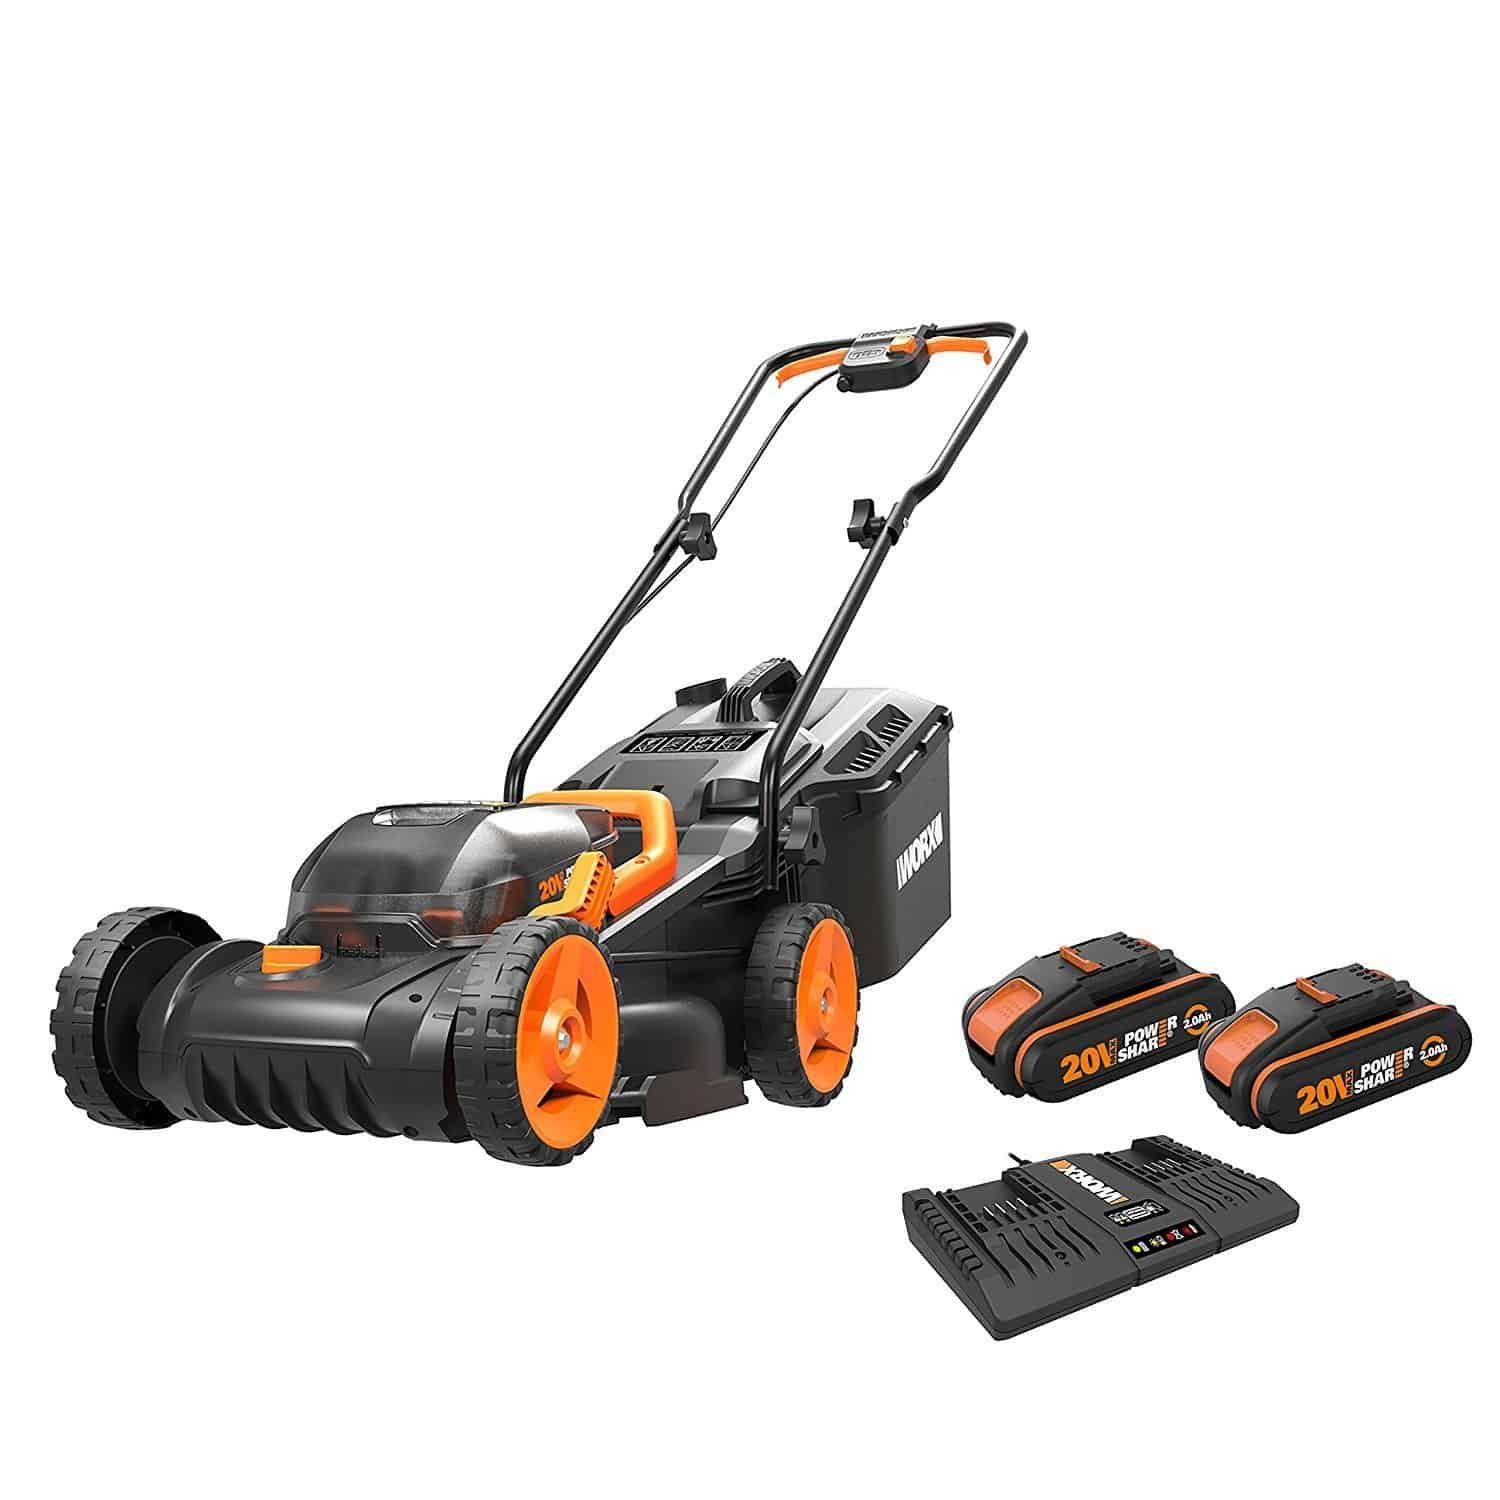 Cordless Lawn Mower Reviews 2018 Best Cordless Lawn Mowers